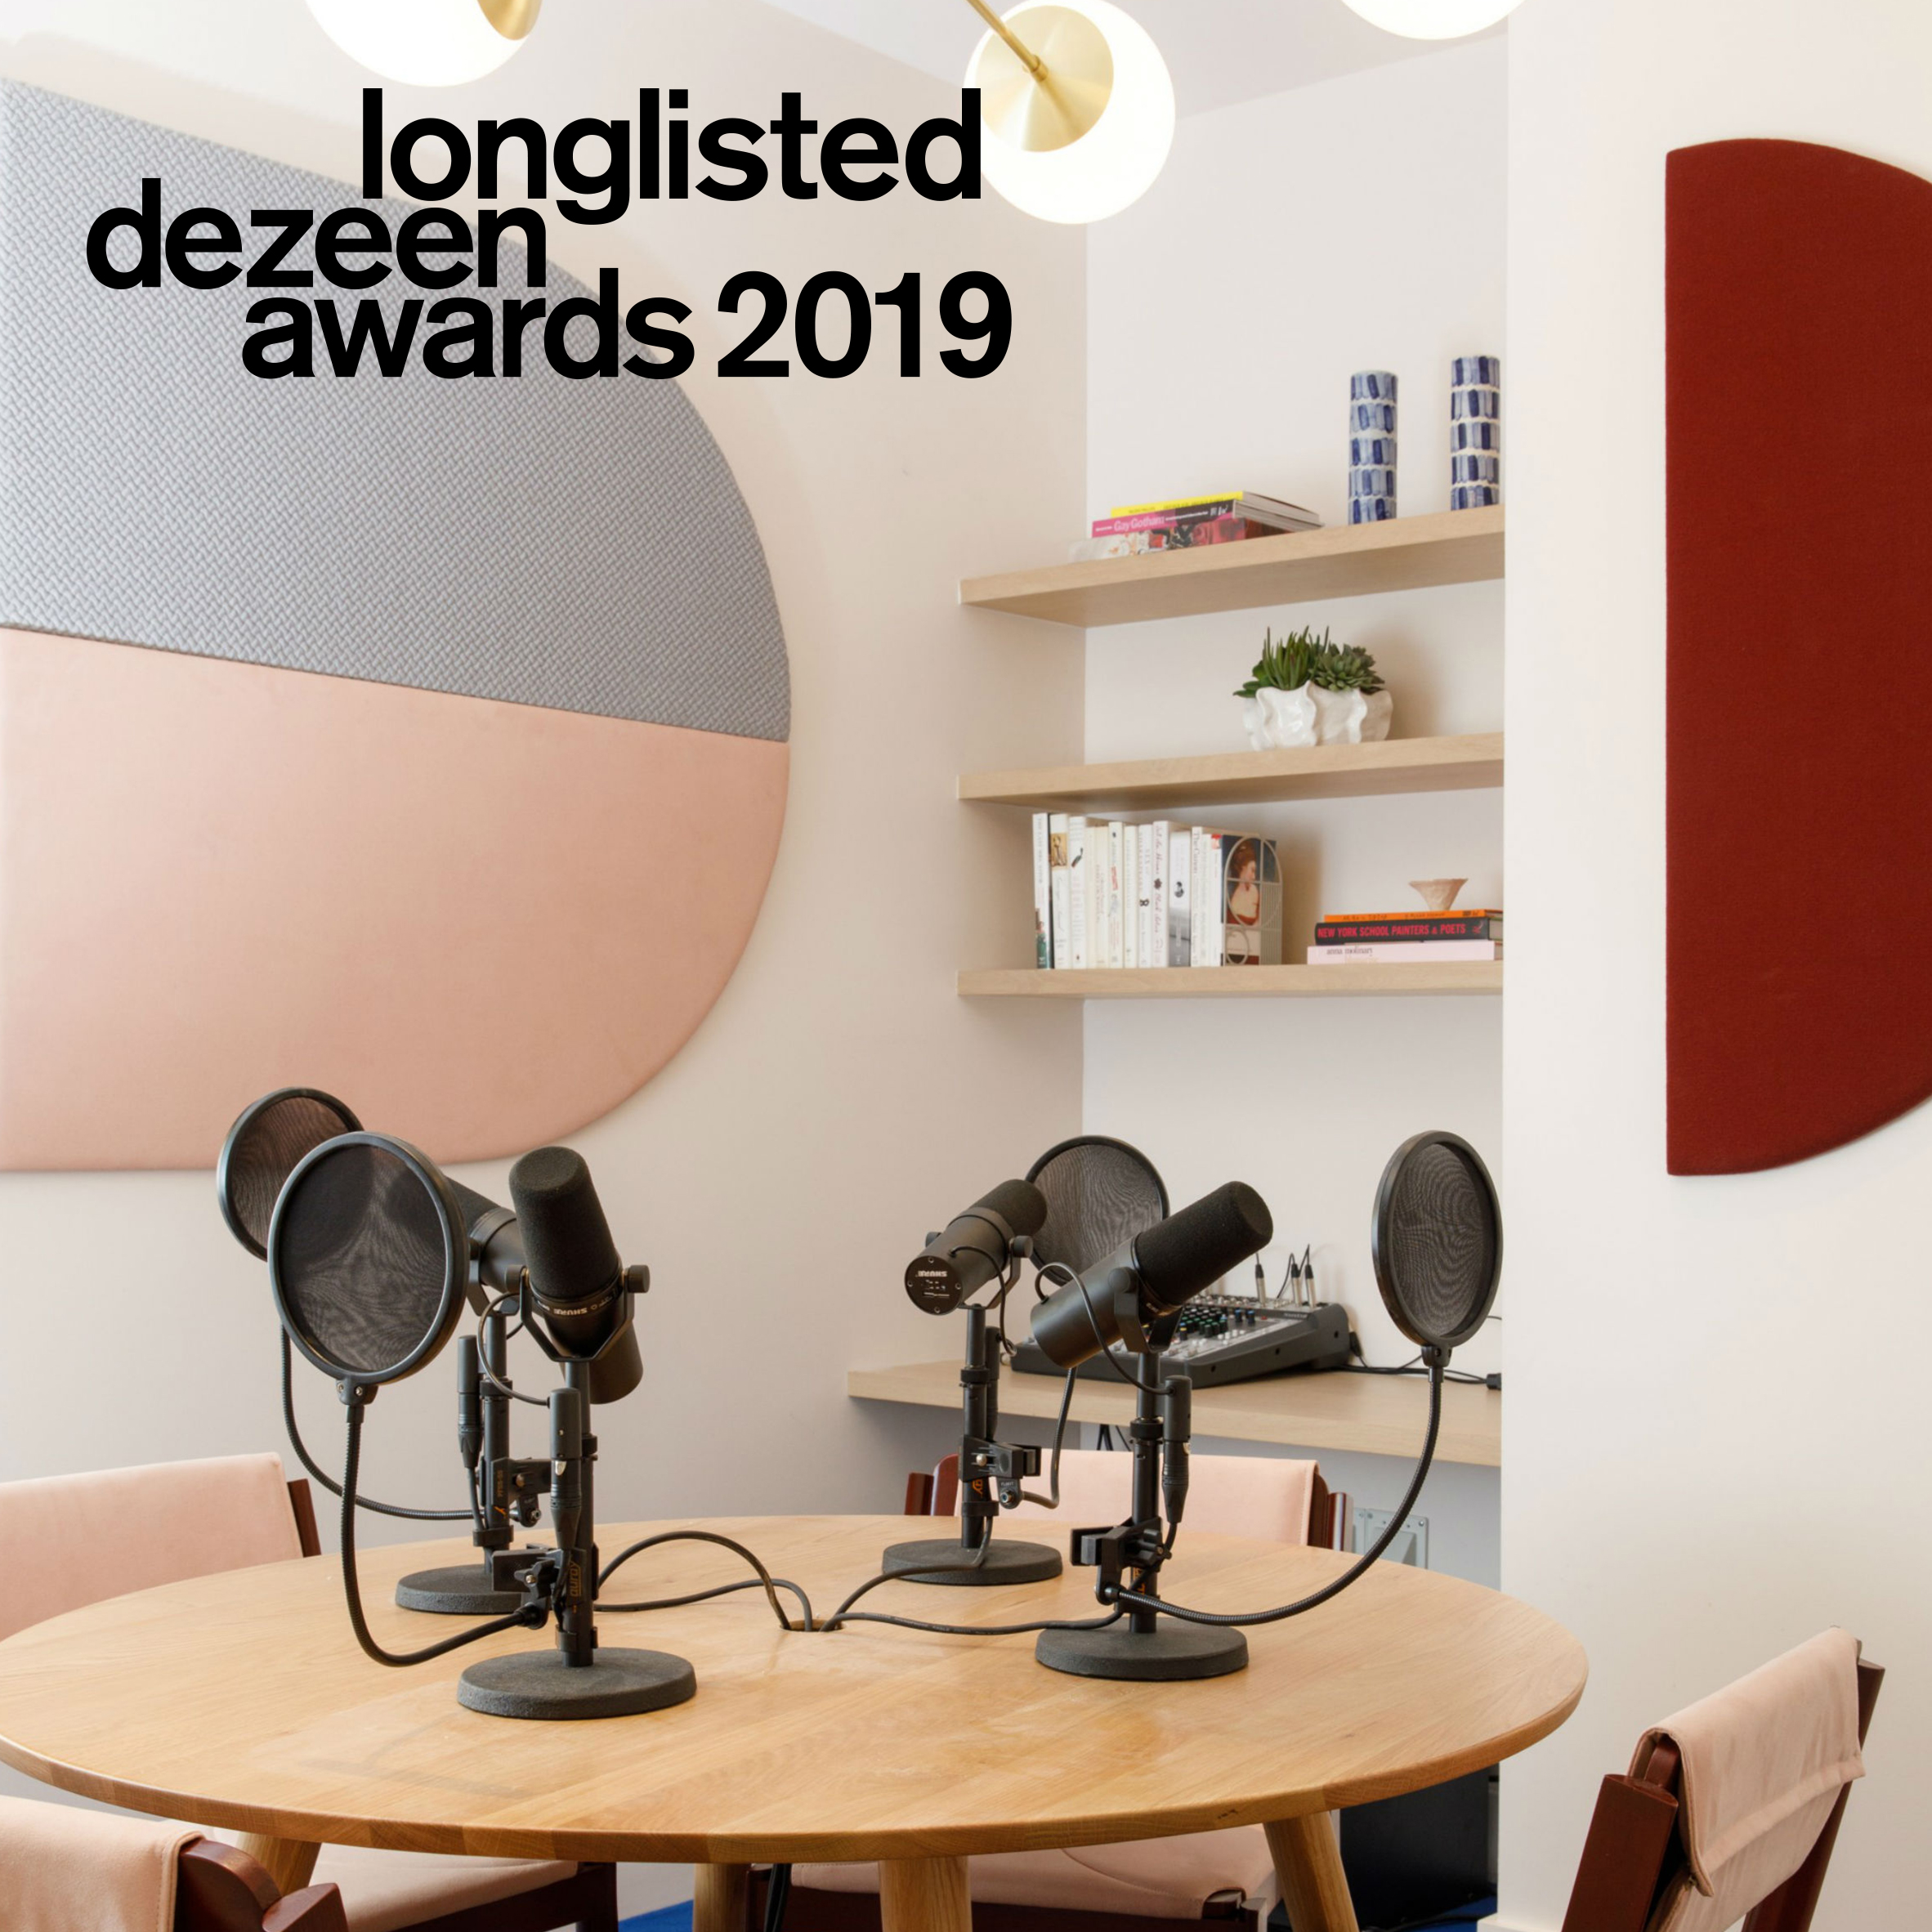 The Wing Dumbo has been longlisted for the Dezeen Awards